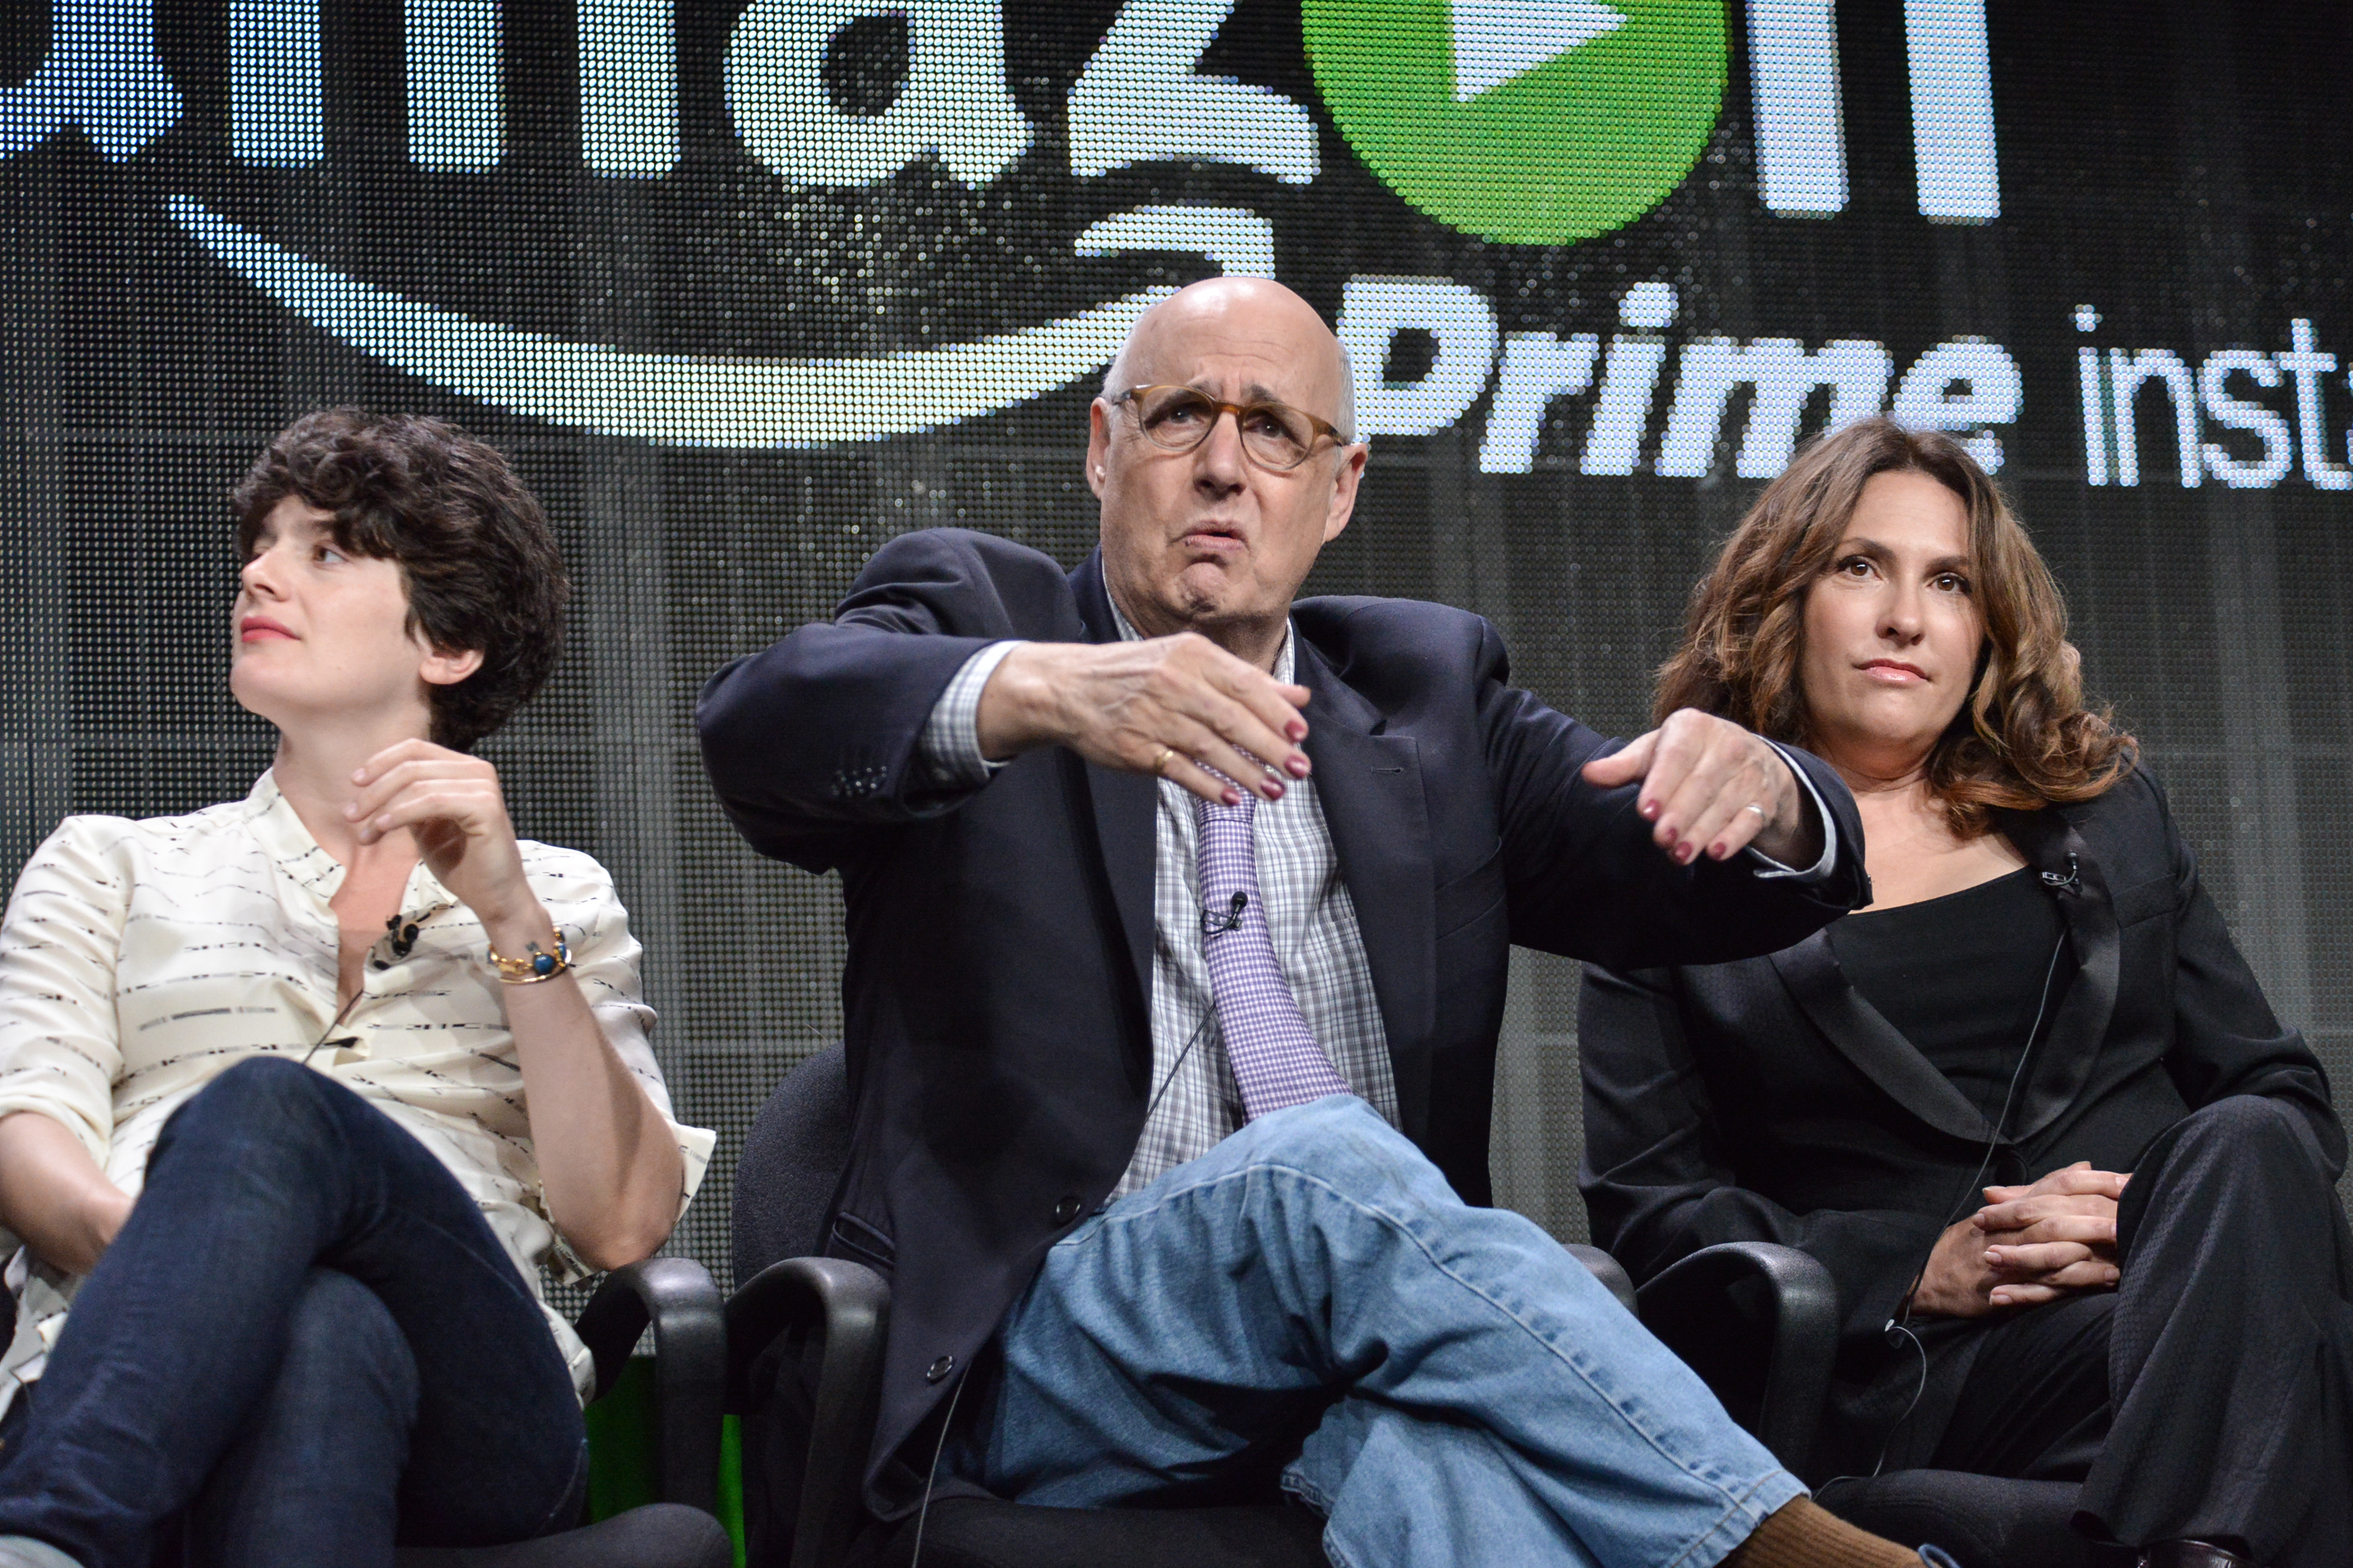 From left, Gaby Hoffmann, Jeffrey Tambor, and Jill Soloway speak onstage during the  Transparent  panel at the Amazon 2014 Summer TCA on Saturday, July 12, 2014, in Beverly Hills, Calif. (Photo by Richard Shotwell/Invision/AP)